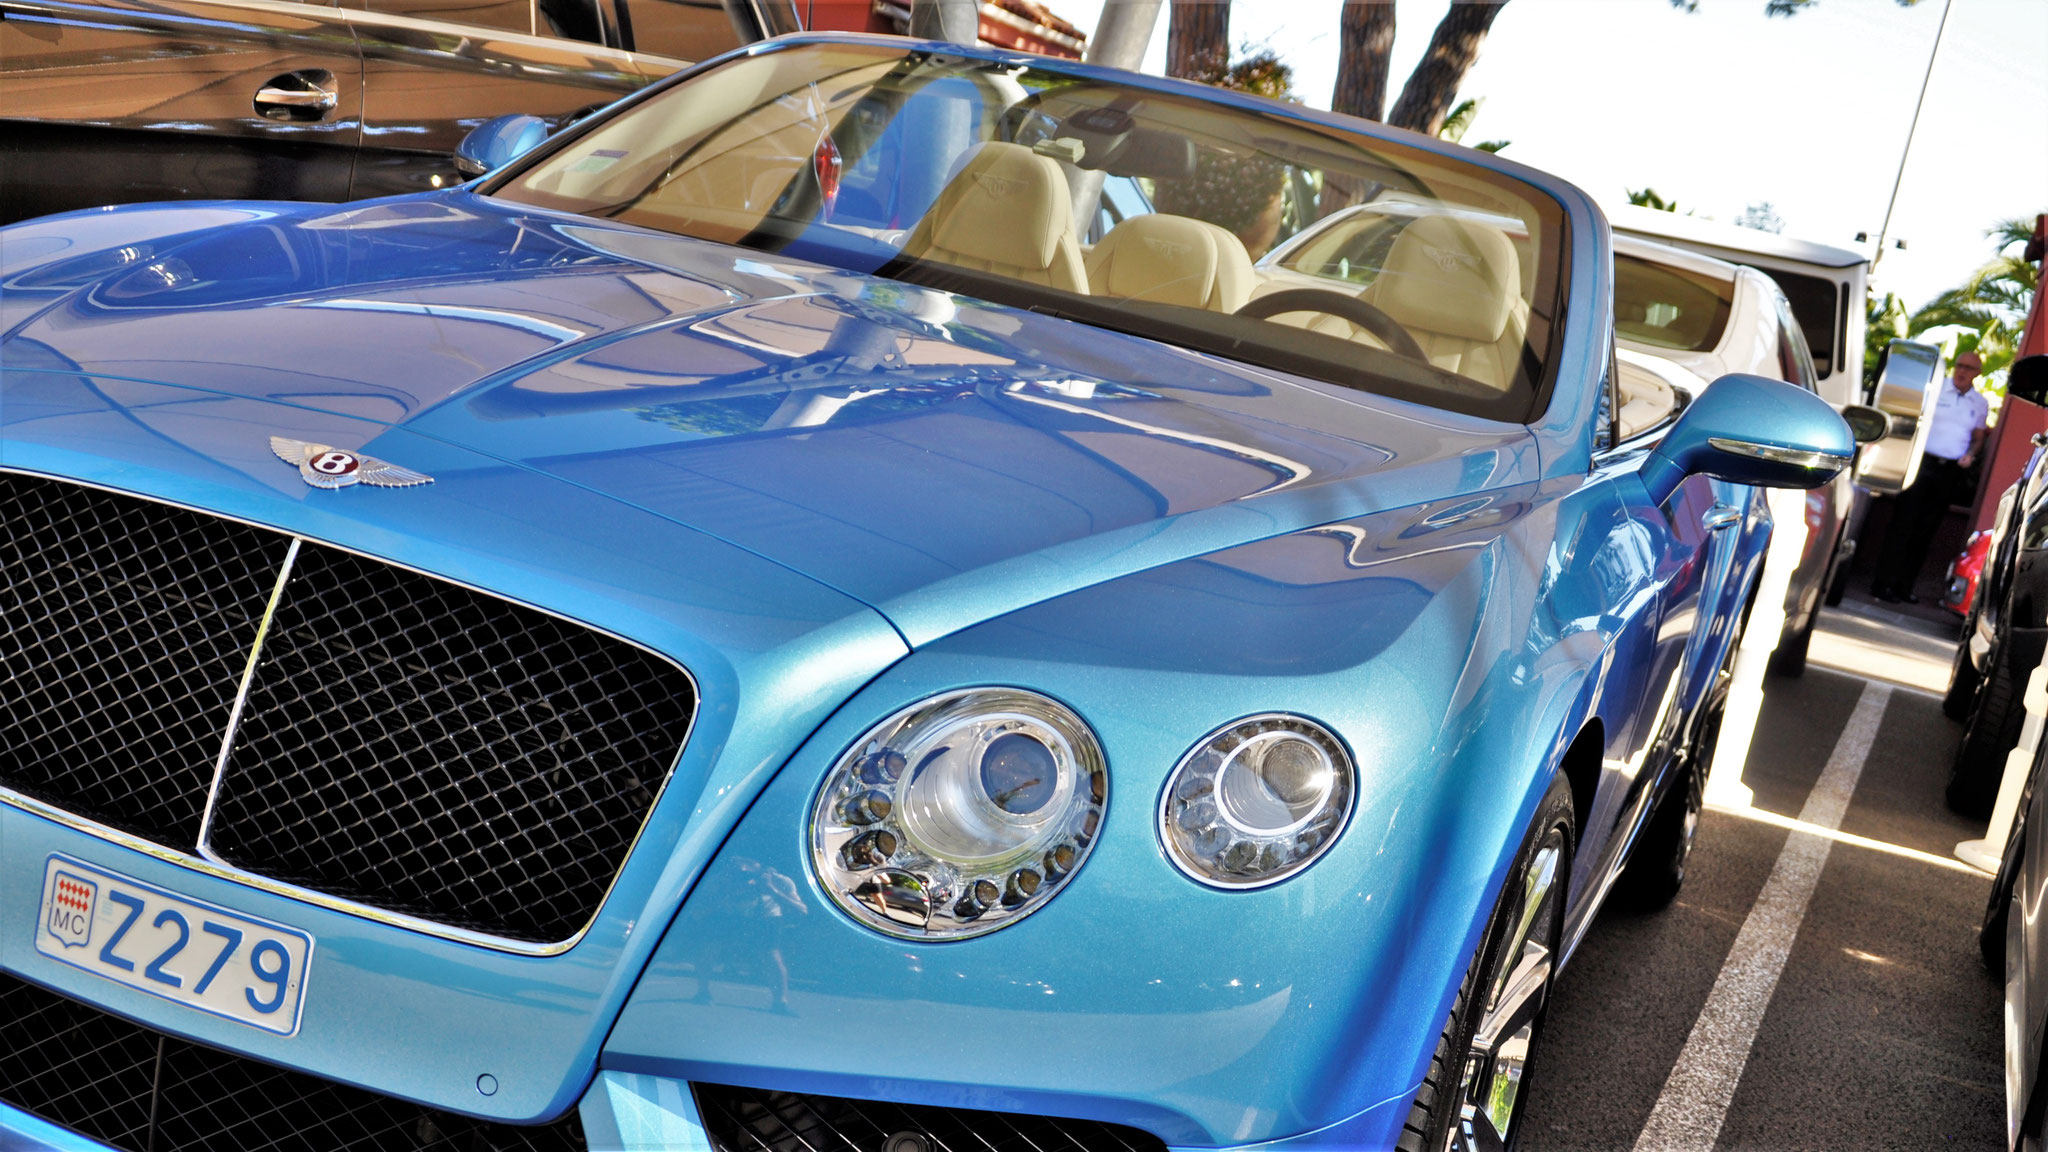 Bentley Continental GTC V8 S - Z279 (MC)